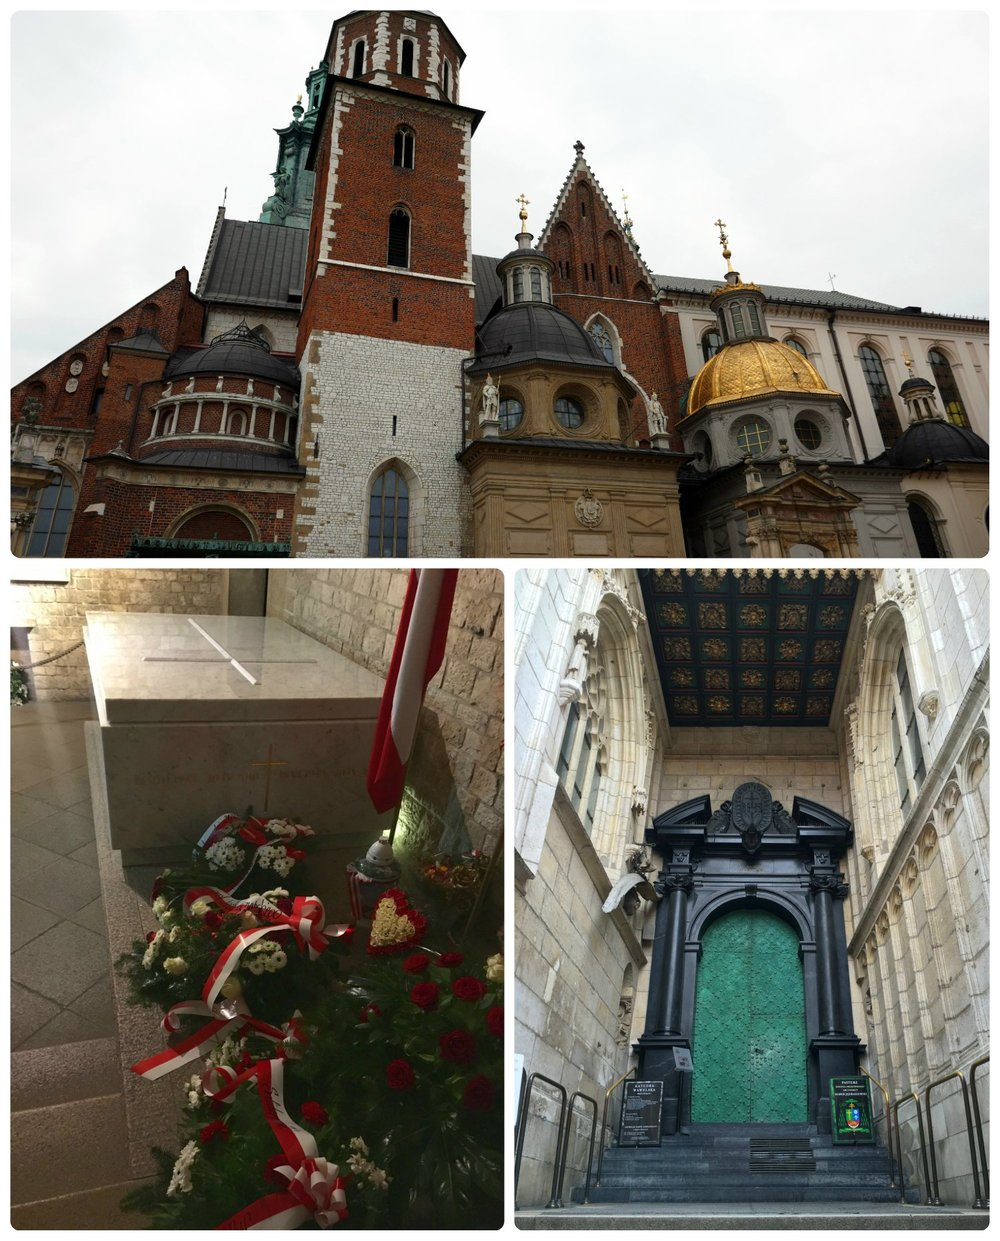 Wawel Cathedral in Krakow, Poland is located in the same area as Wawel Castle, and since both are major tourist attractions, be prepared for lines to get entrance tickets. Walking the grounds and entering the crypt is free for all visitors.